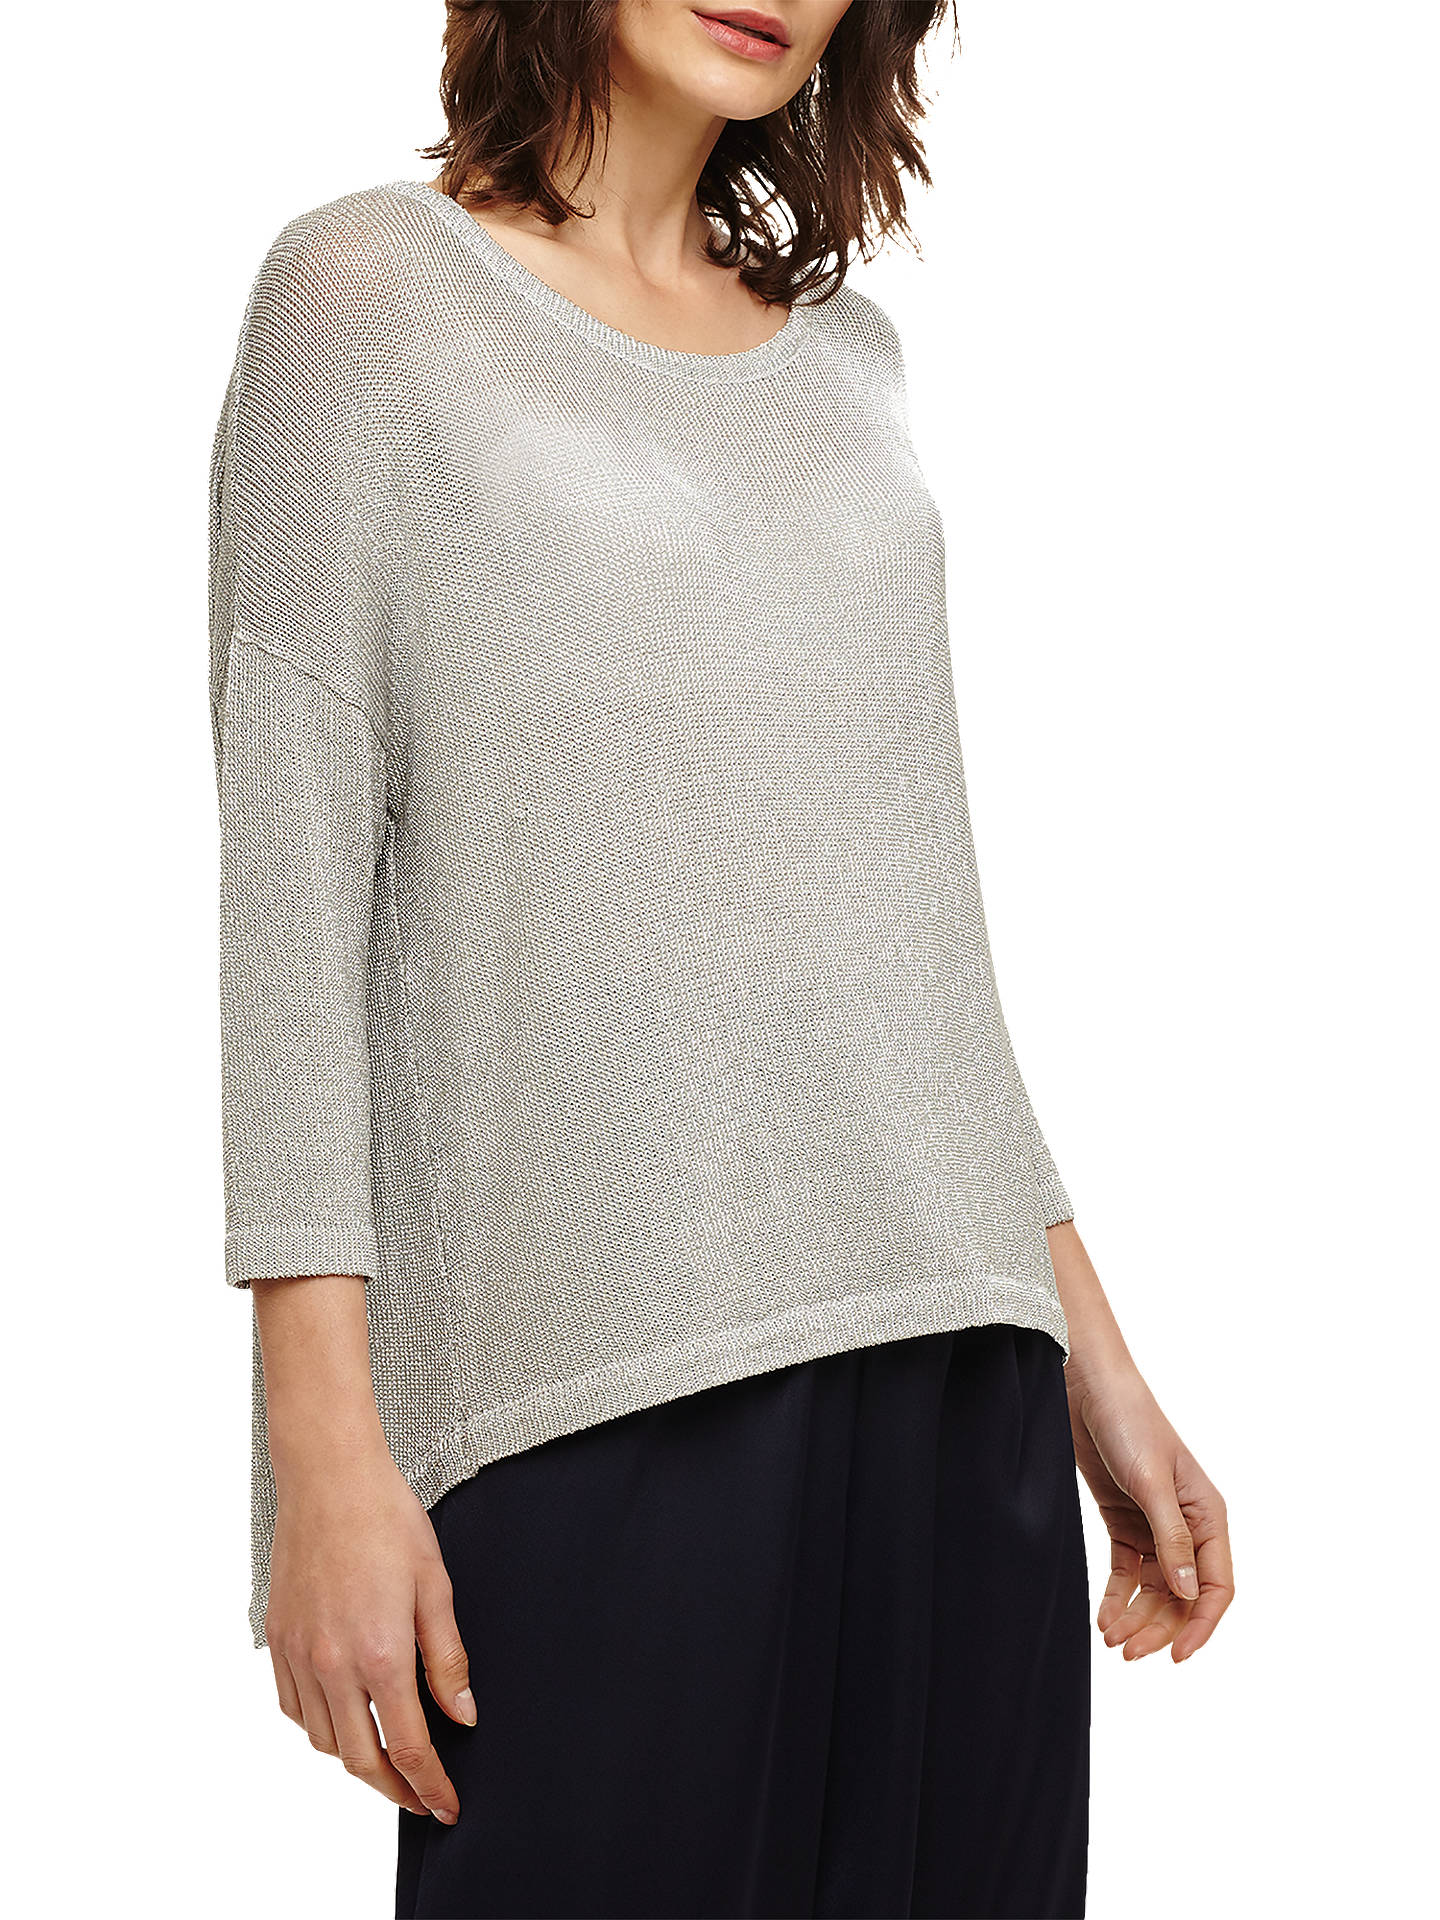 BuyPhase Eight Miranda Metallic Yarn Knit Top, Silver, XS Online at johnlewis.com